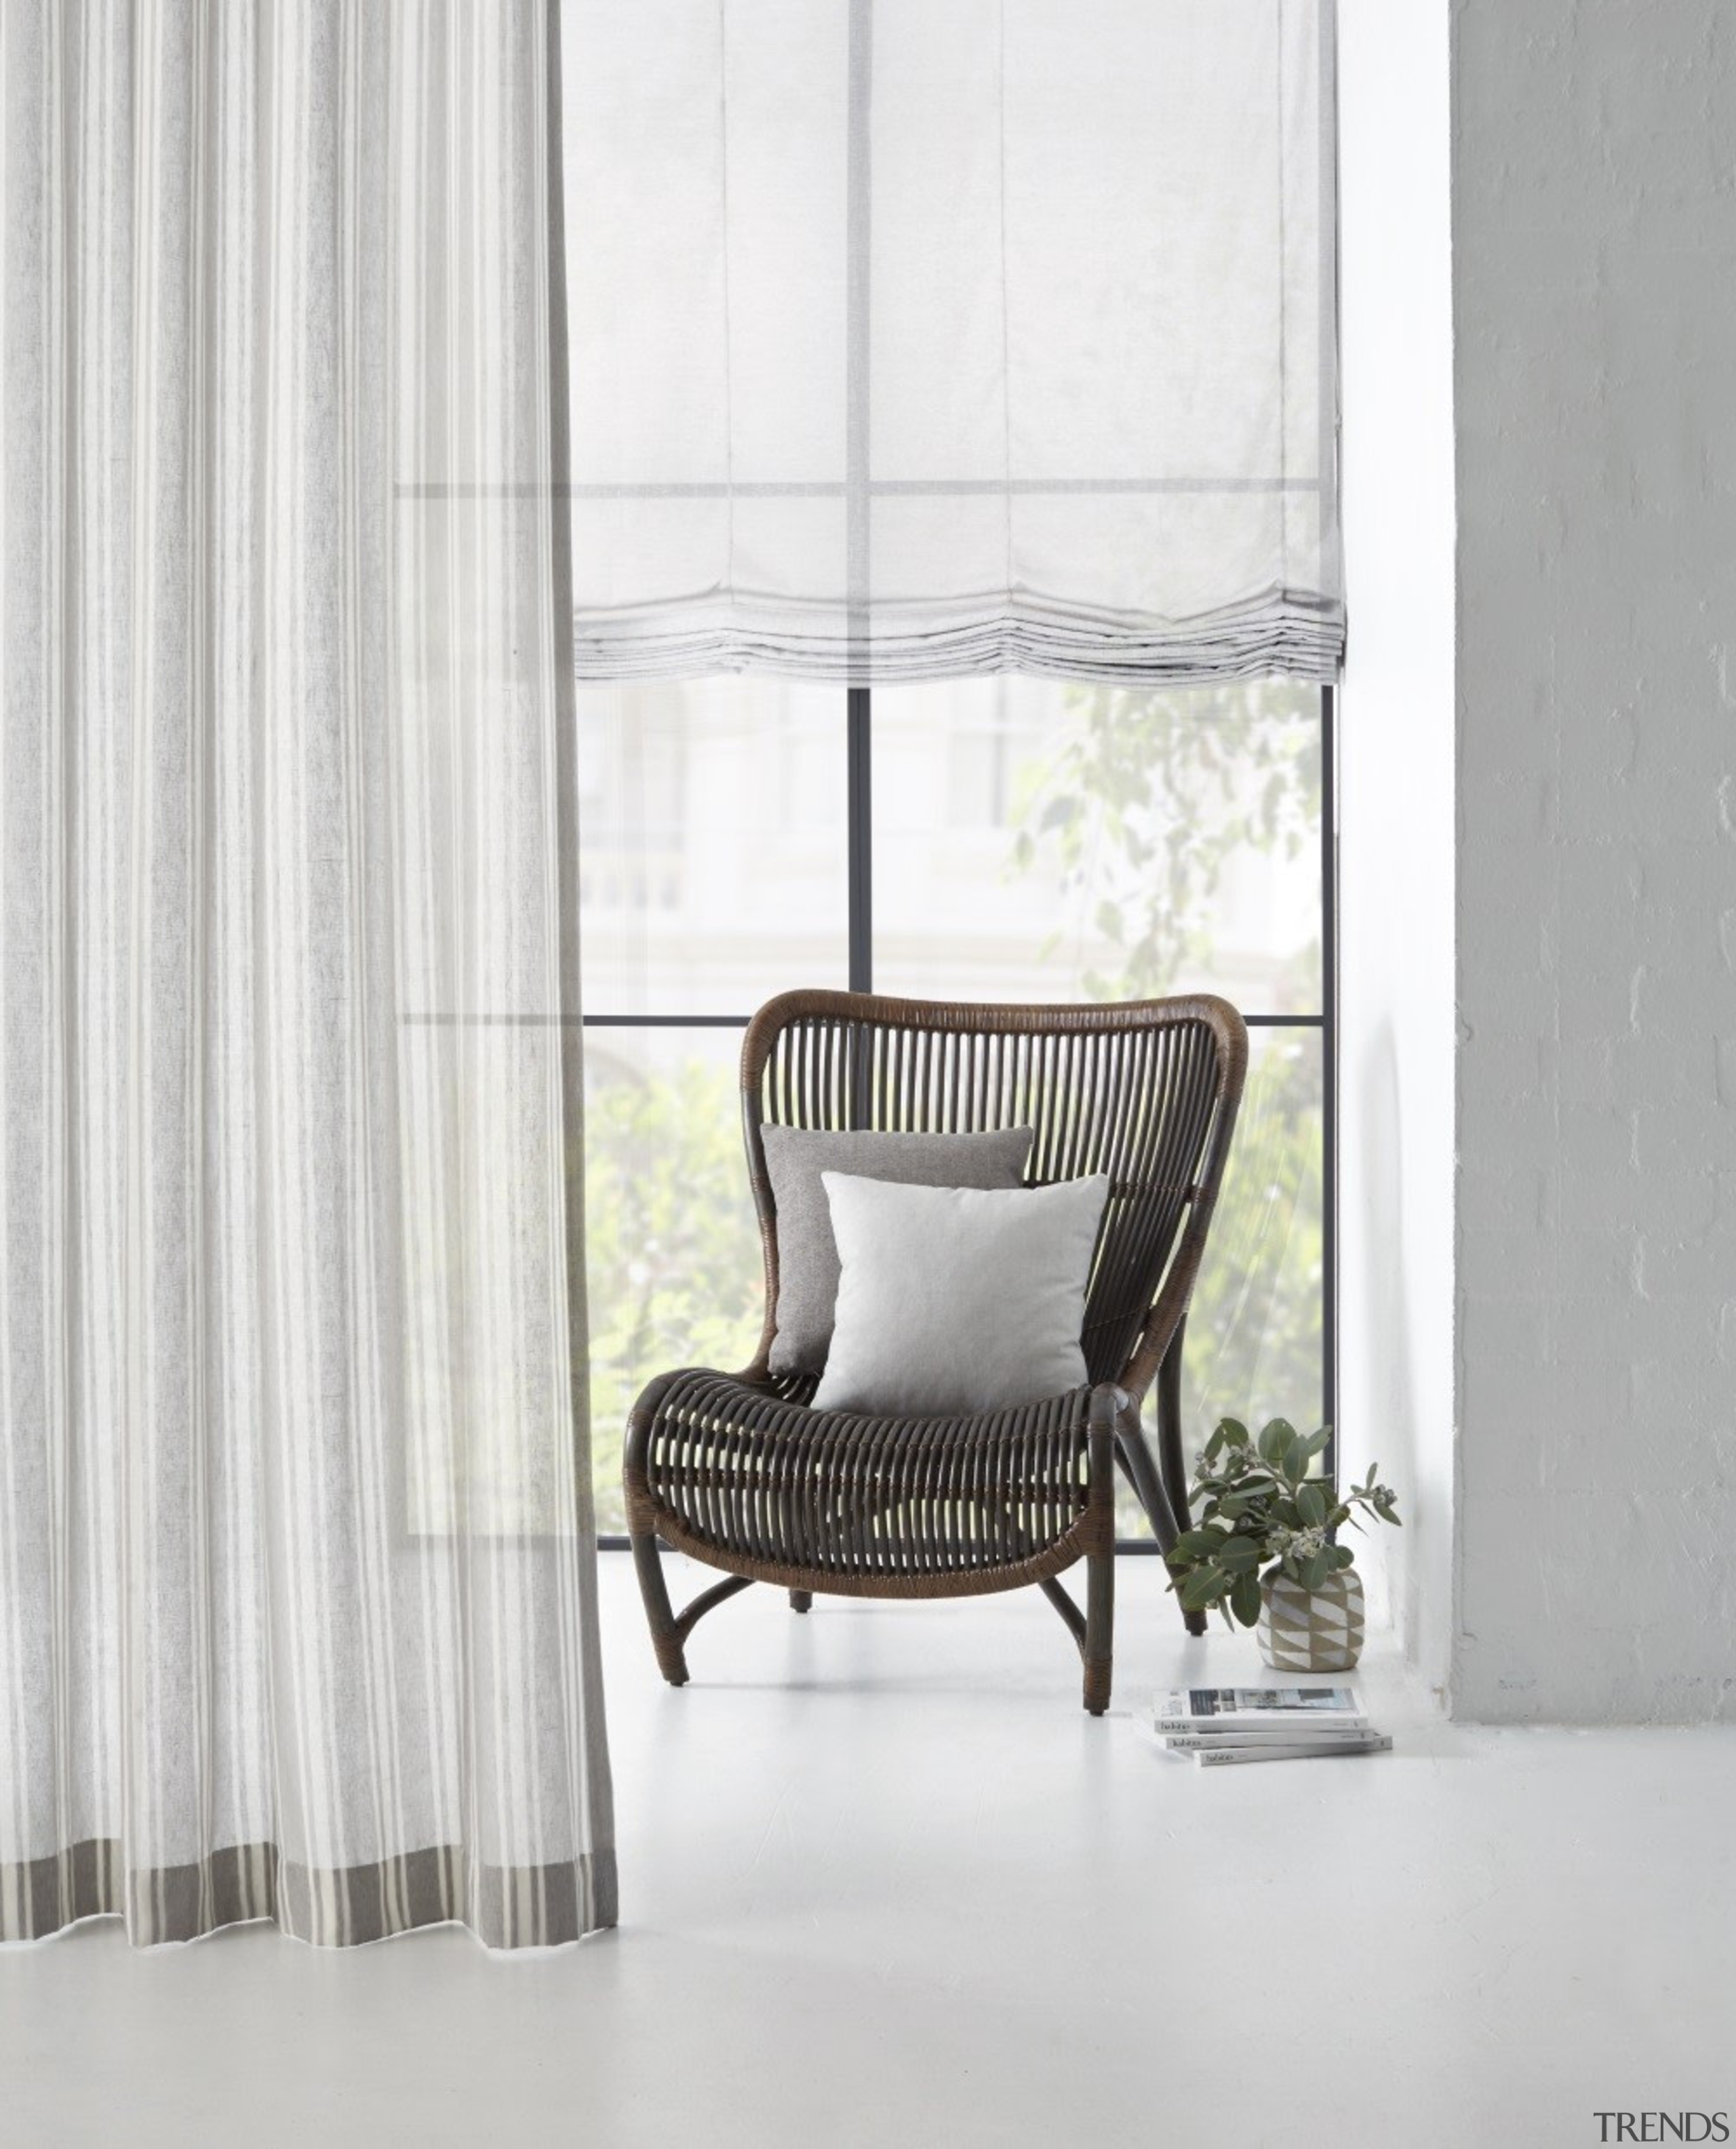 Harrisons Curtains - Harrisons Curtains - chair | chair, curtain, floor, furniture, interior design, shade, textile, window, window blind, window covering, window treatment, white